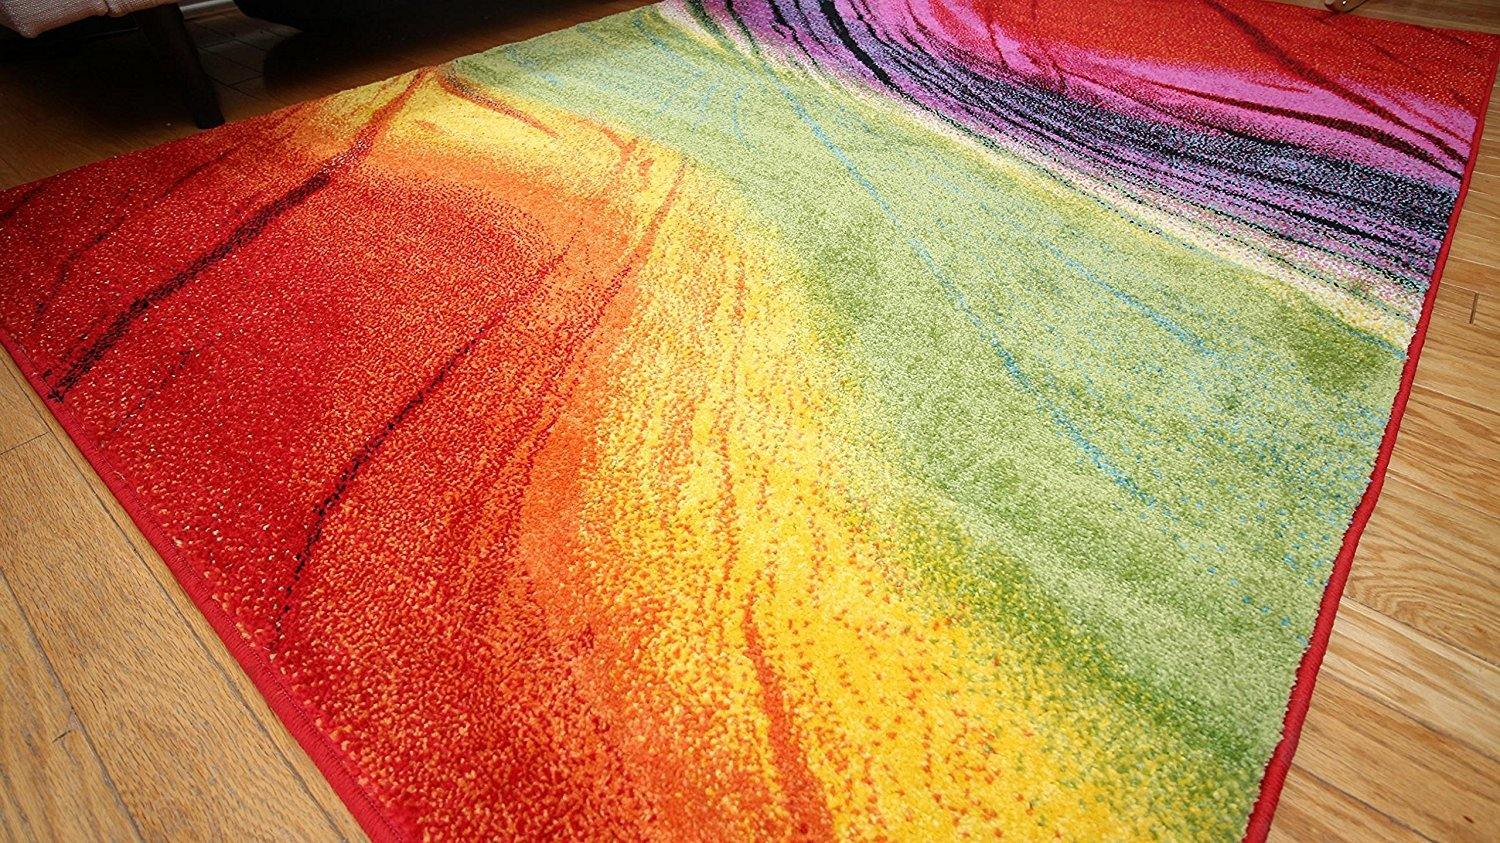 Radiance Art Collection Multicolor Gradient Waves Rug